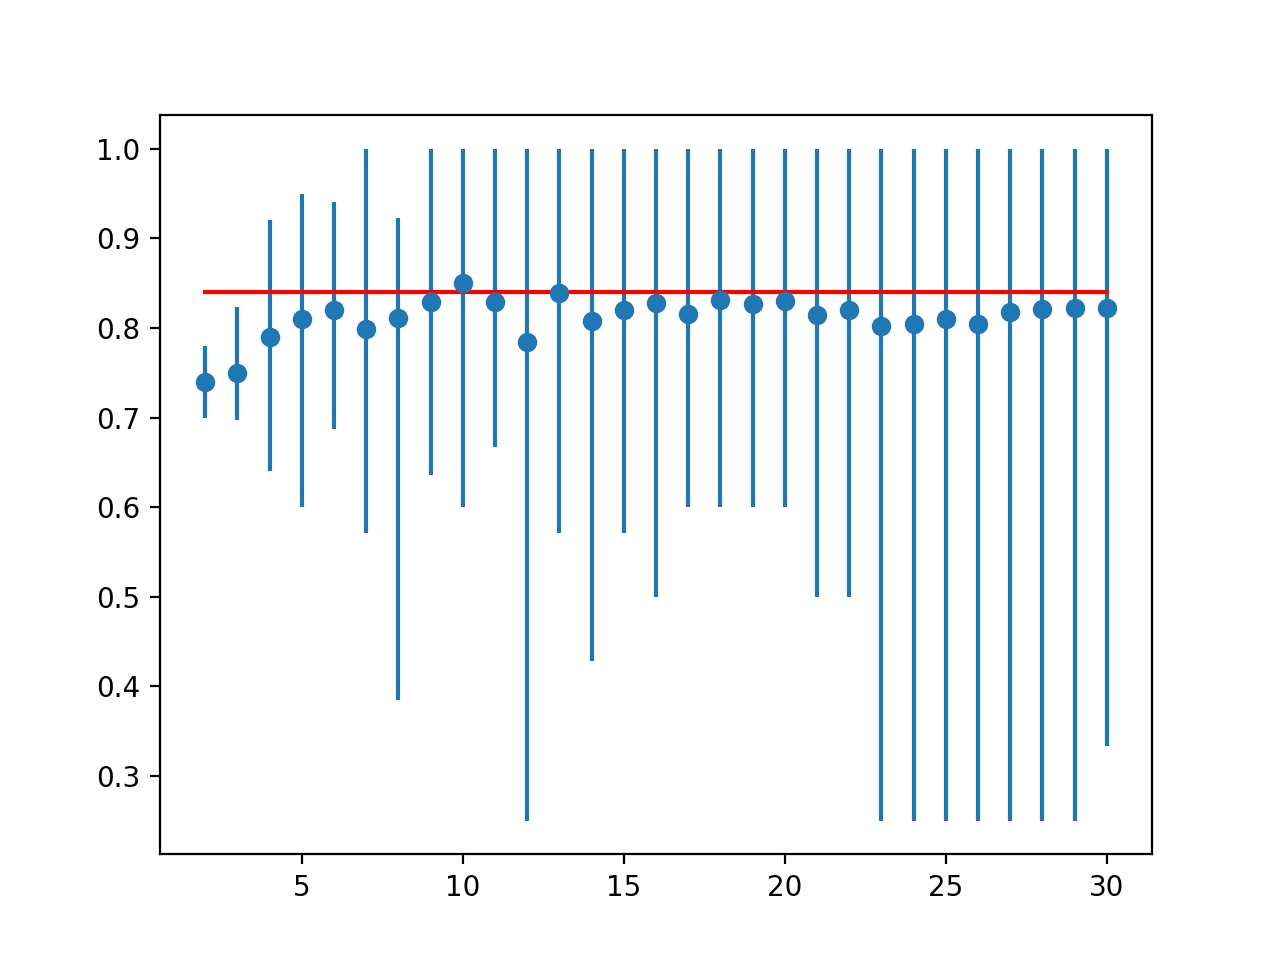 Line Plot of Mean Accuracy for Cross-Validation k-Values With Error Bars (Blue) vs. the Ideal Case (red)